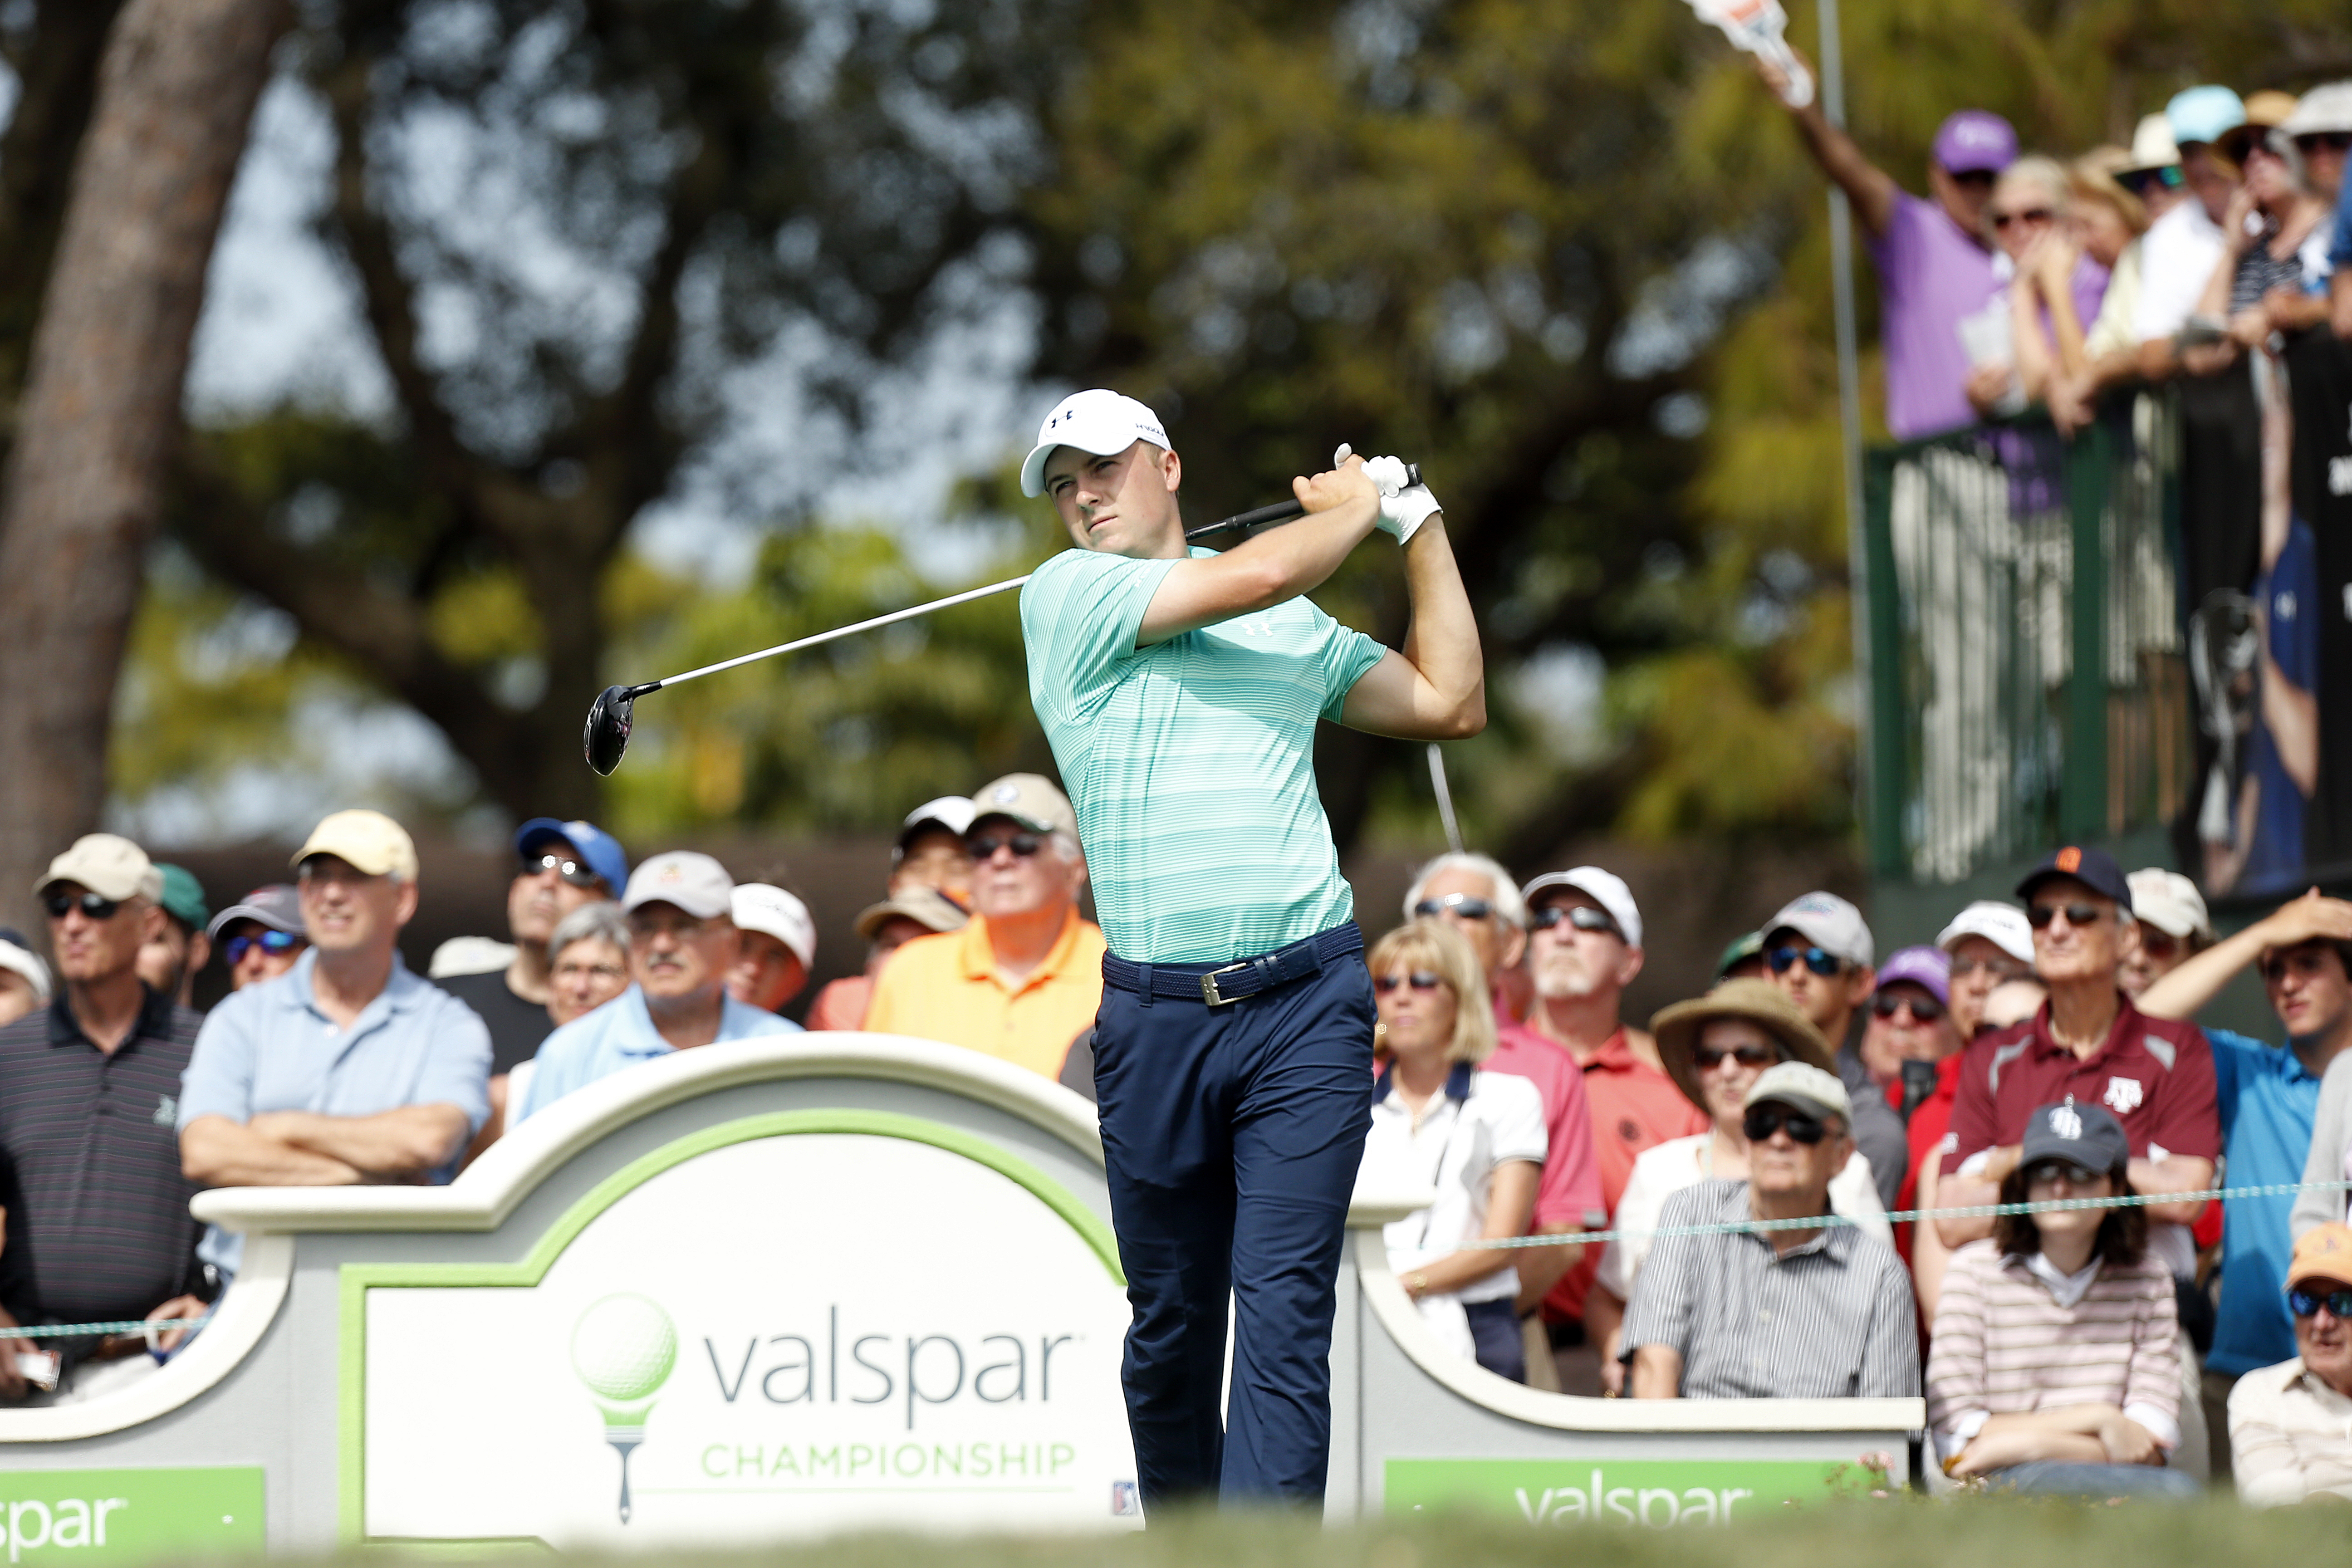 Jordan Spieth hits his tee shot in the 10th hole during the third round of the Valspar Championship golf tournament Saturday, March 12, 2016, in Palm Harbor, Fla. (AP Photo/Brian